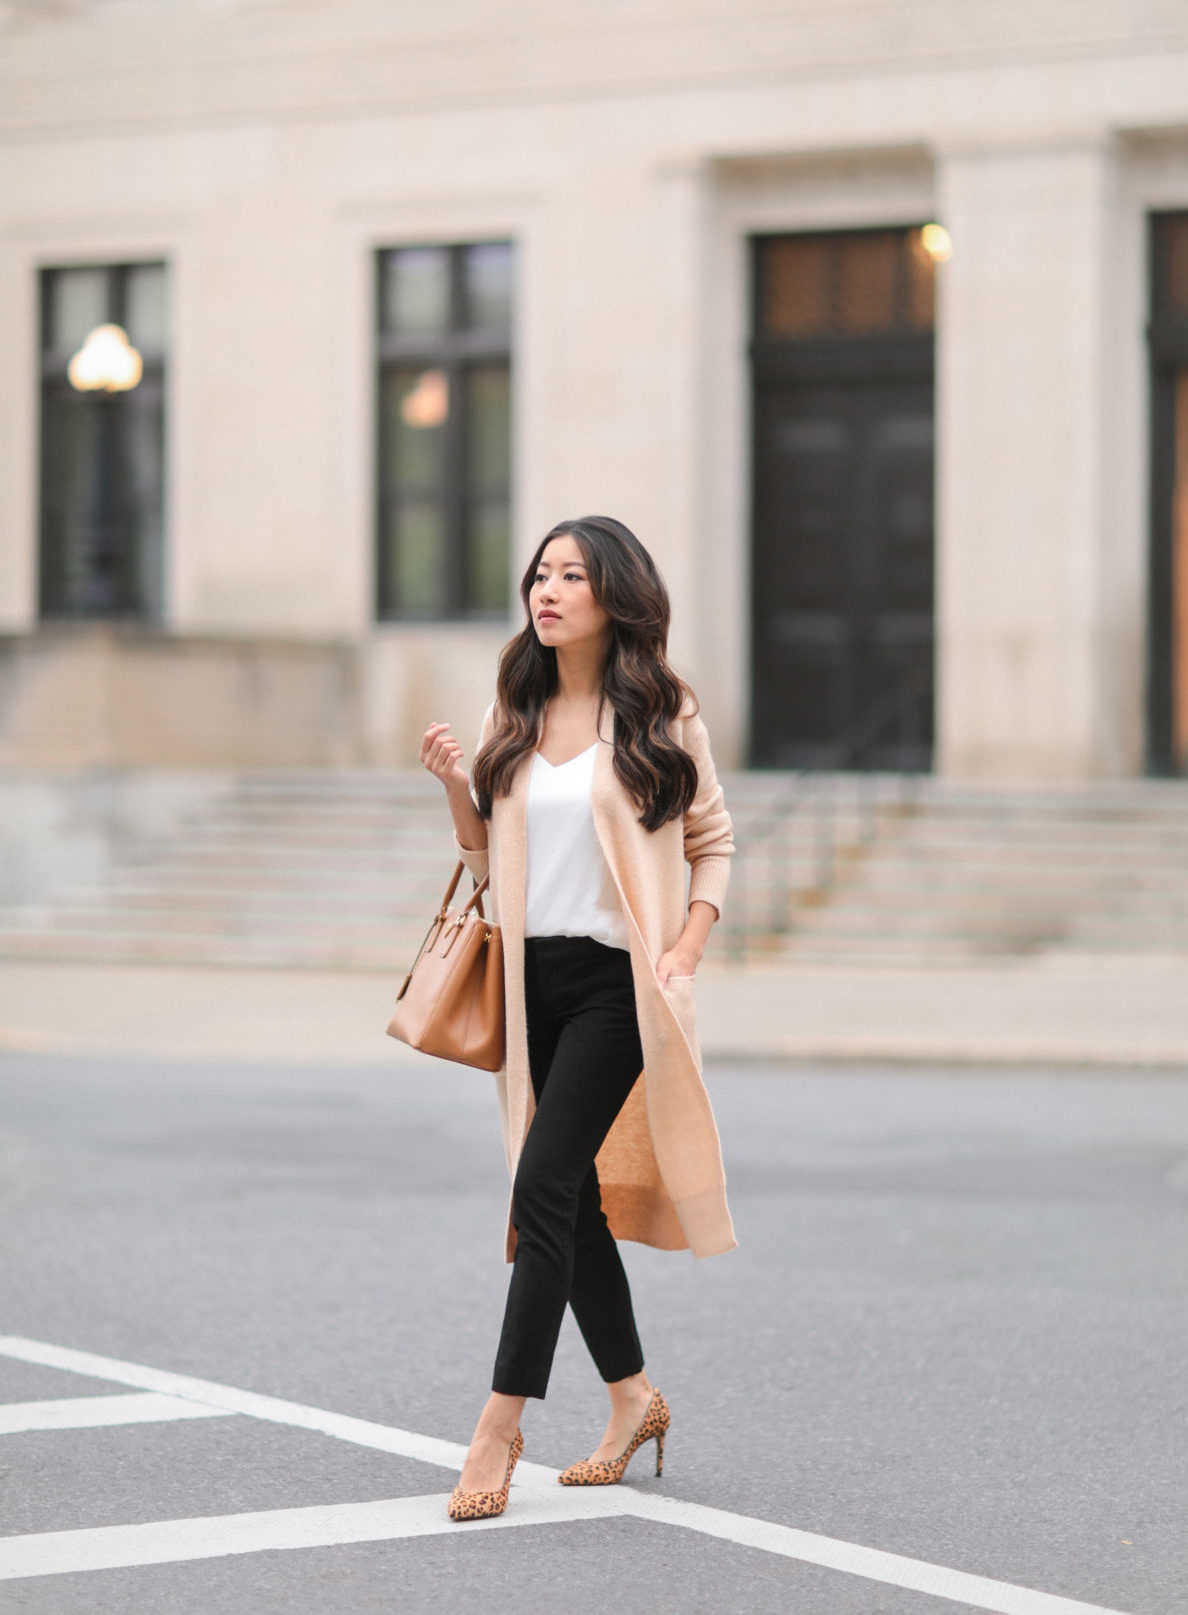 Camel duster sweater + leopard pumps